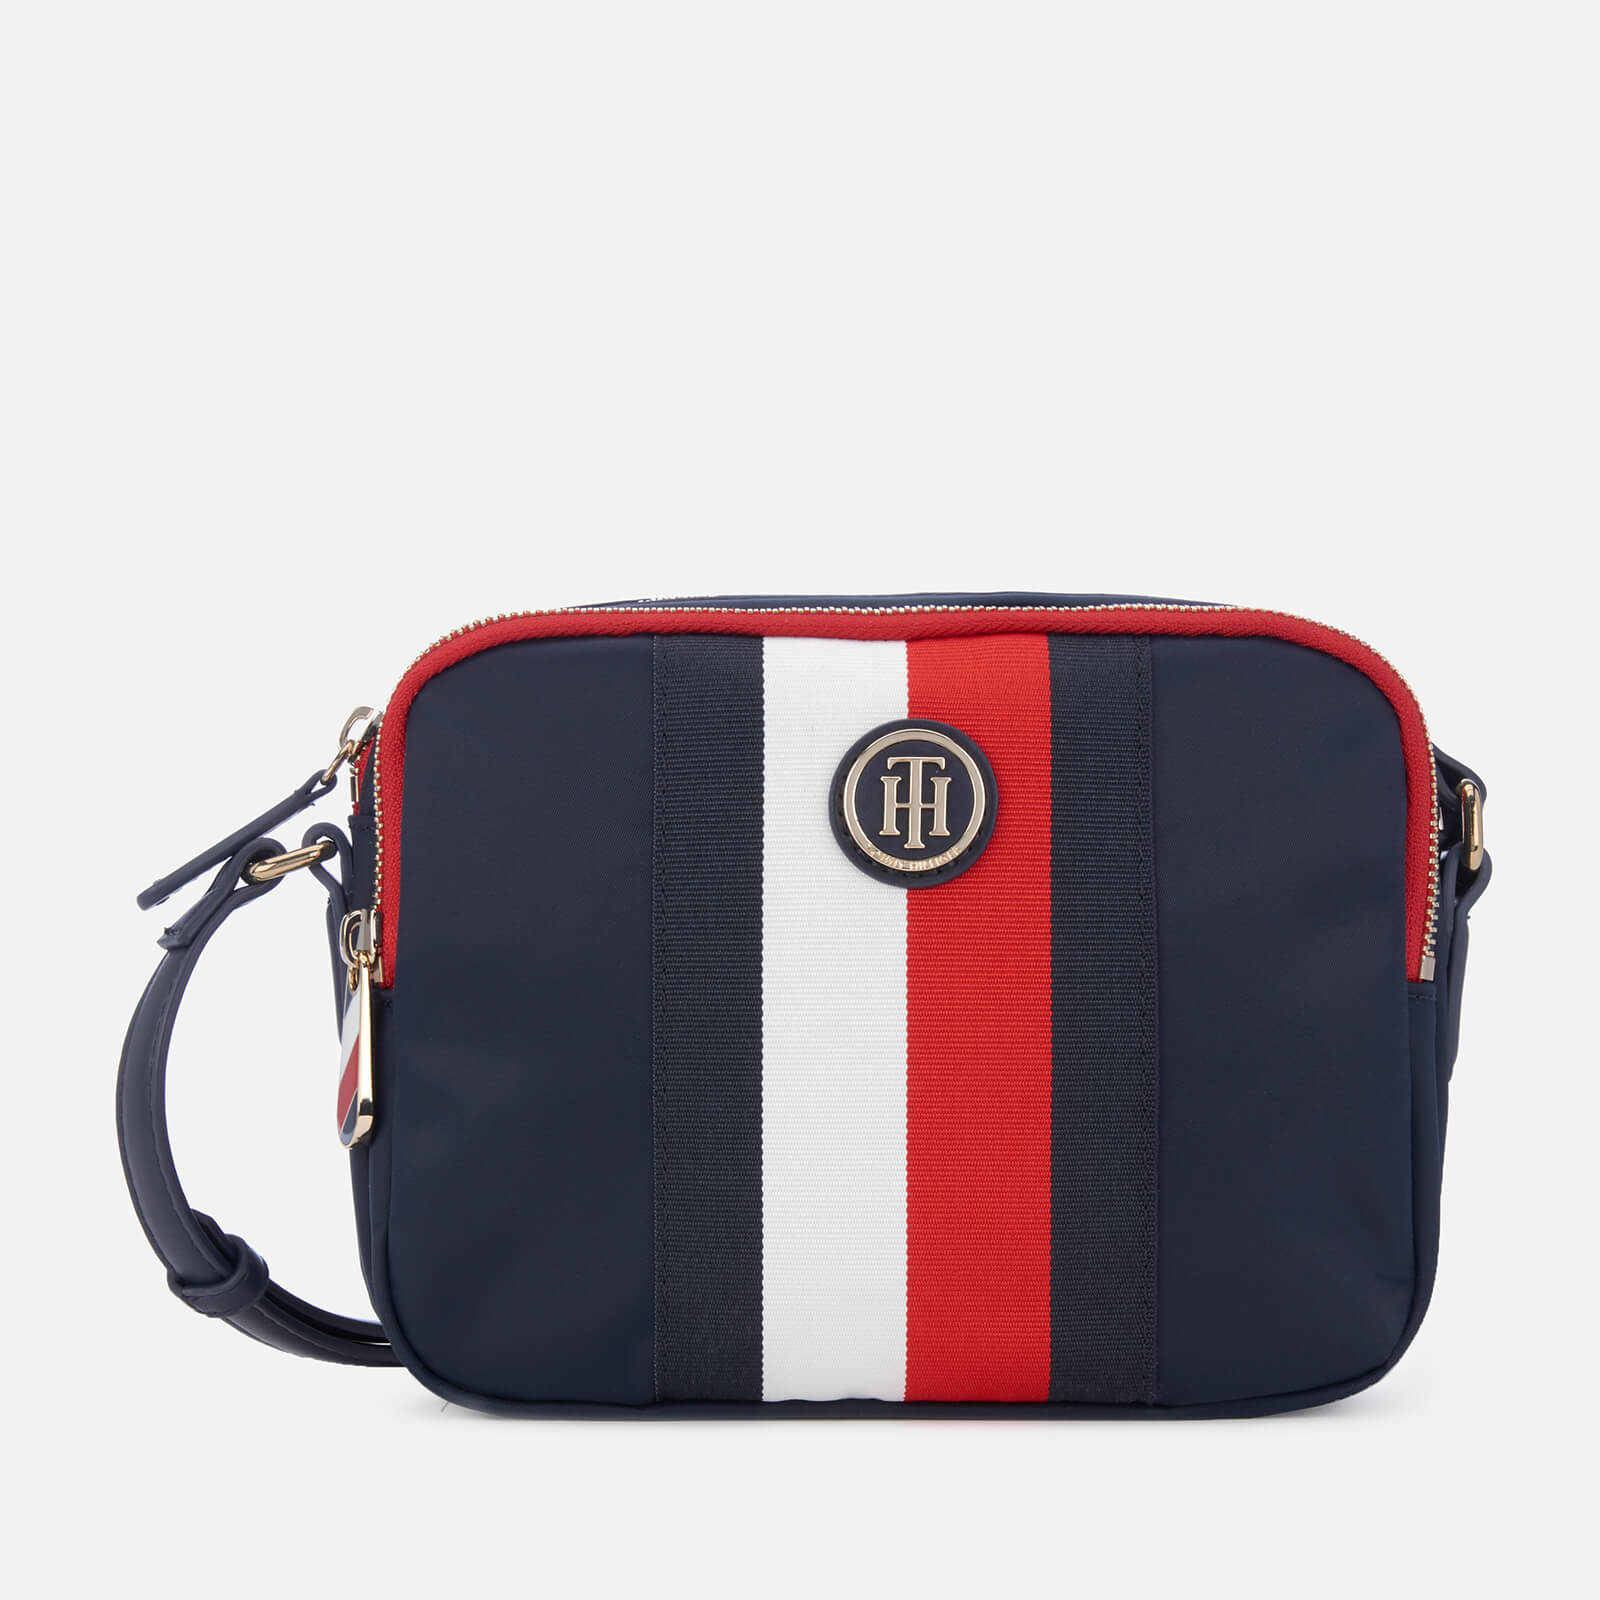 93813e61a50d Tommy Hilfiger Women's Poppy Nylon Crossover Bag - Corporate Womens  Accessories | TheHut.com